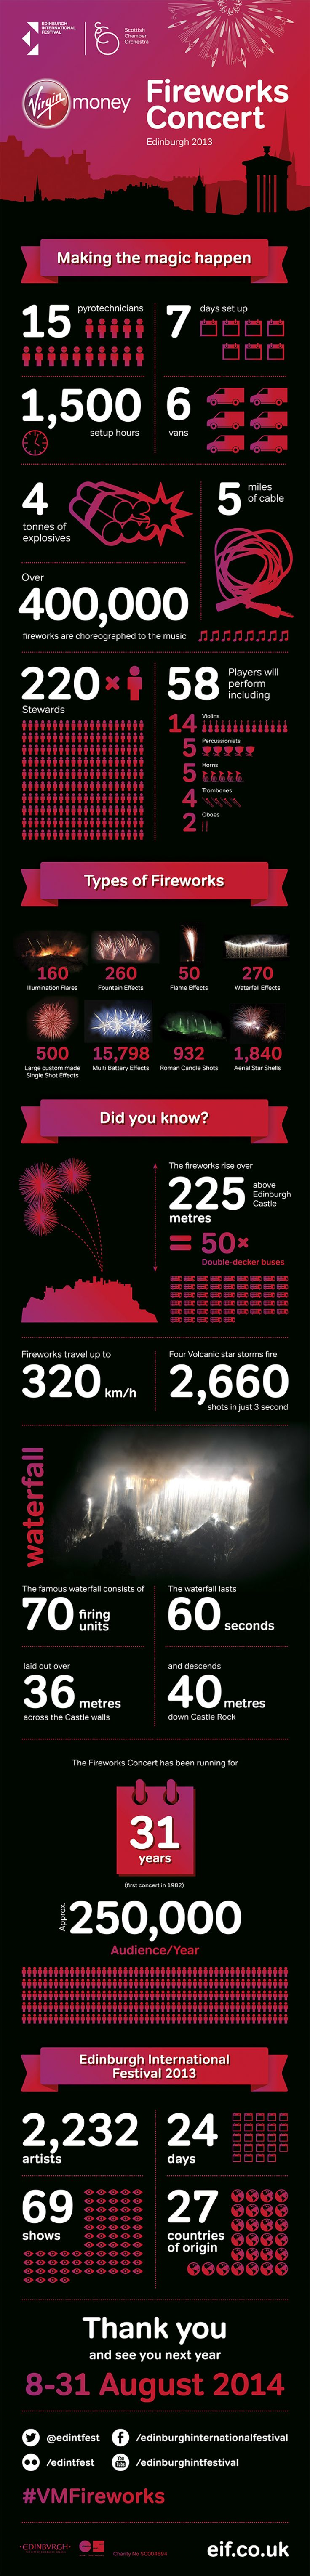 Edinburgh International Festival 2013 Fireworks Concert |Infographic